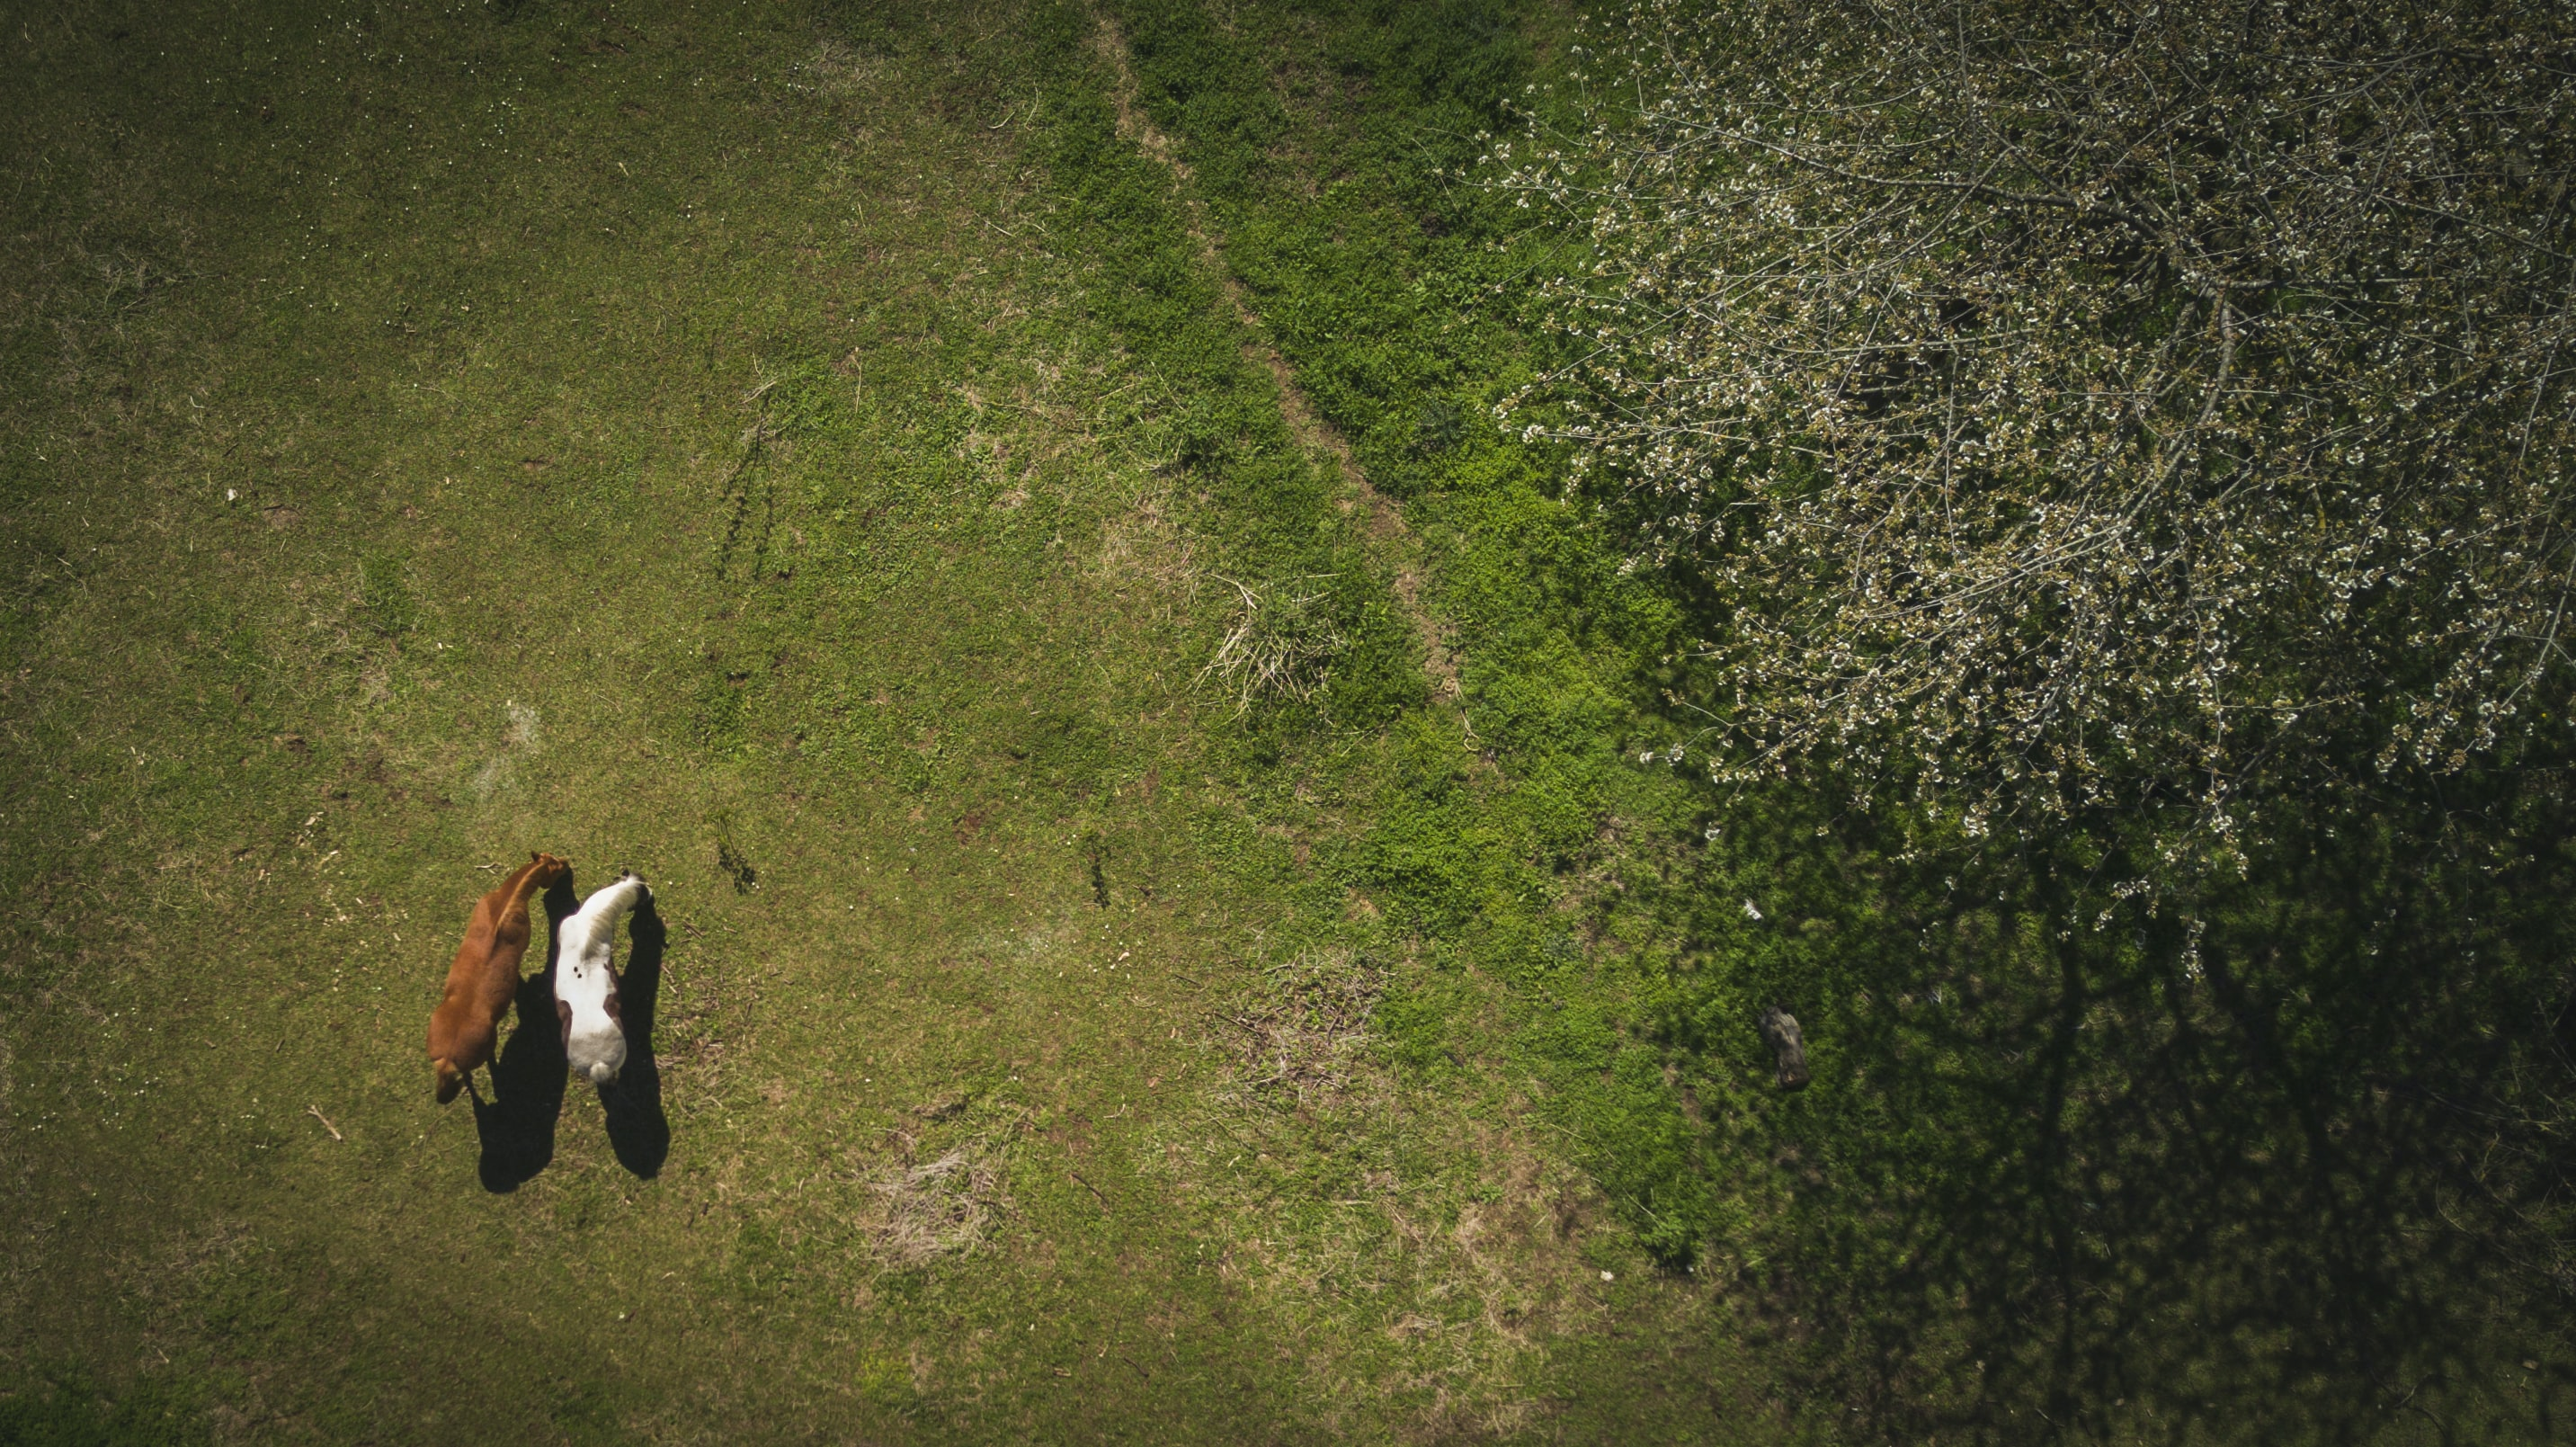 A drone shot of two horses grazing close to each other